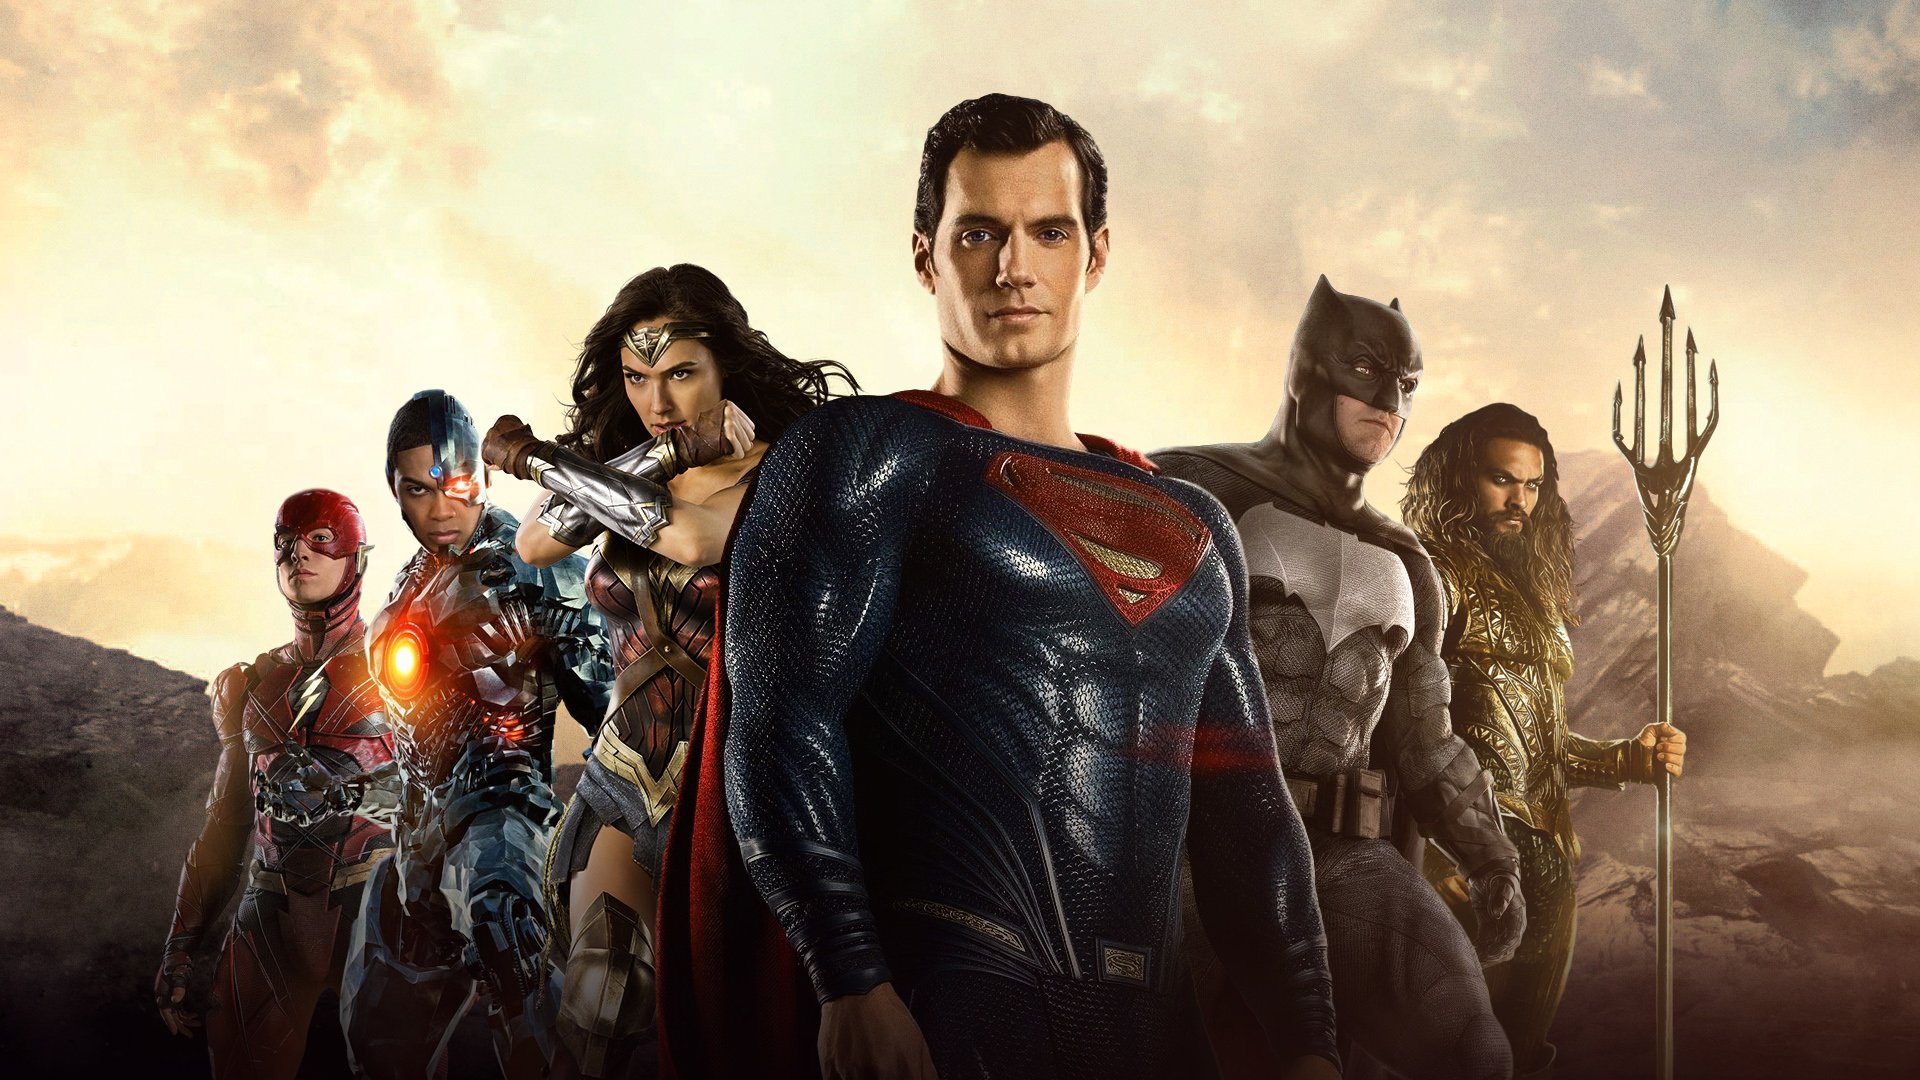 Justice League 2017 Movie Hd Movies 4k Wallpapers Images Backgrounds Photos And Pictures